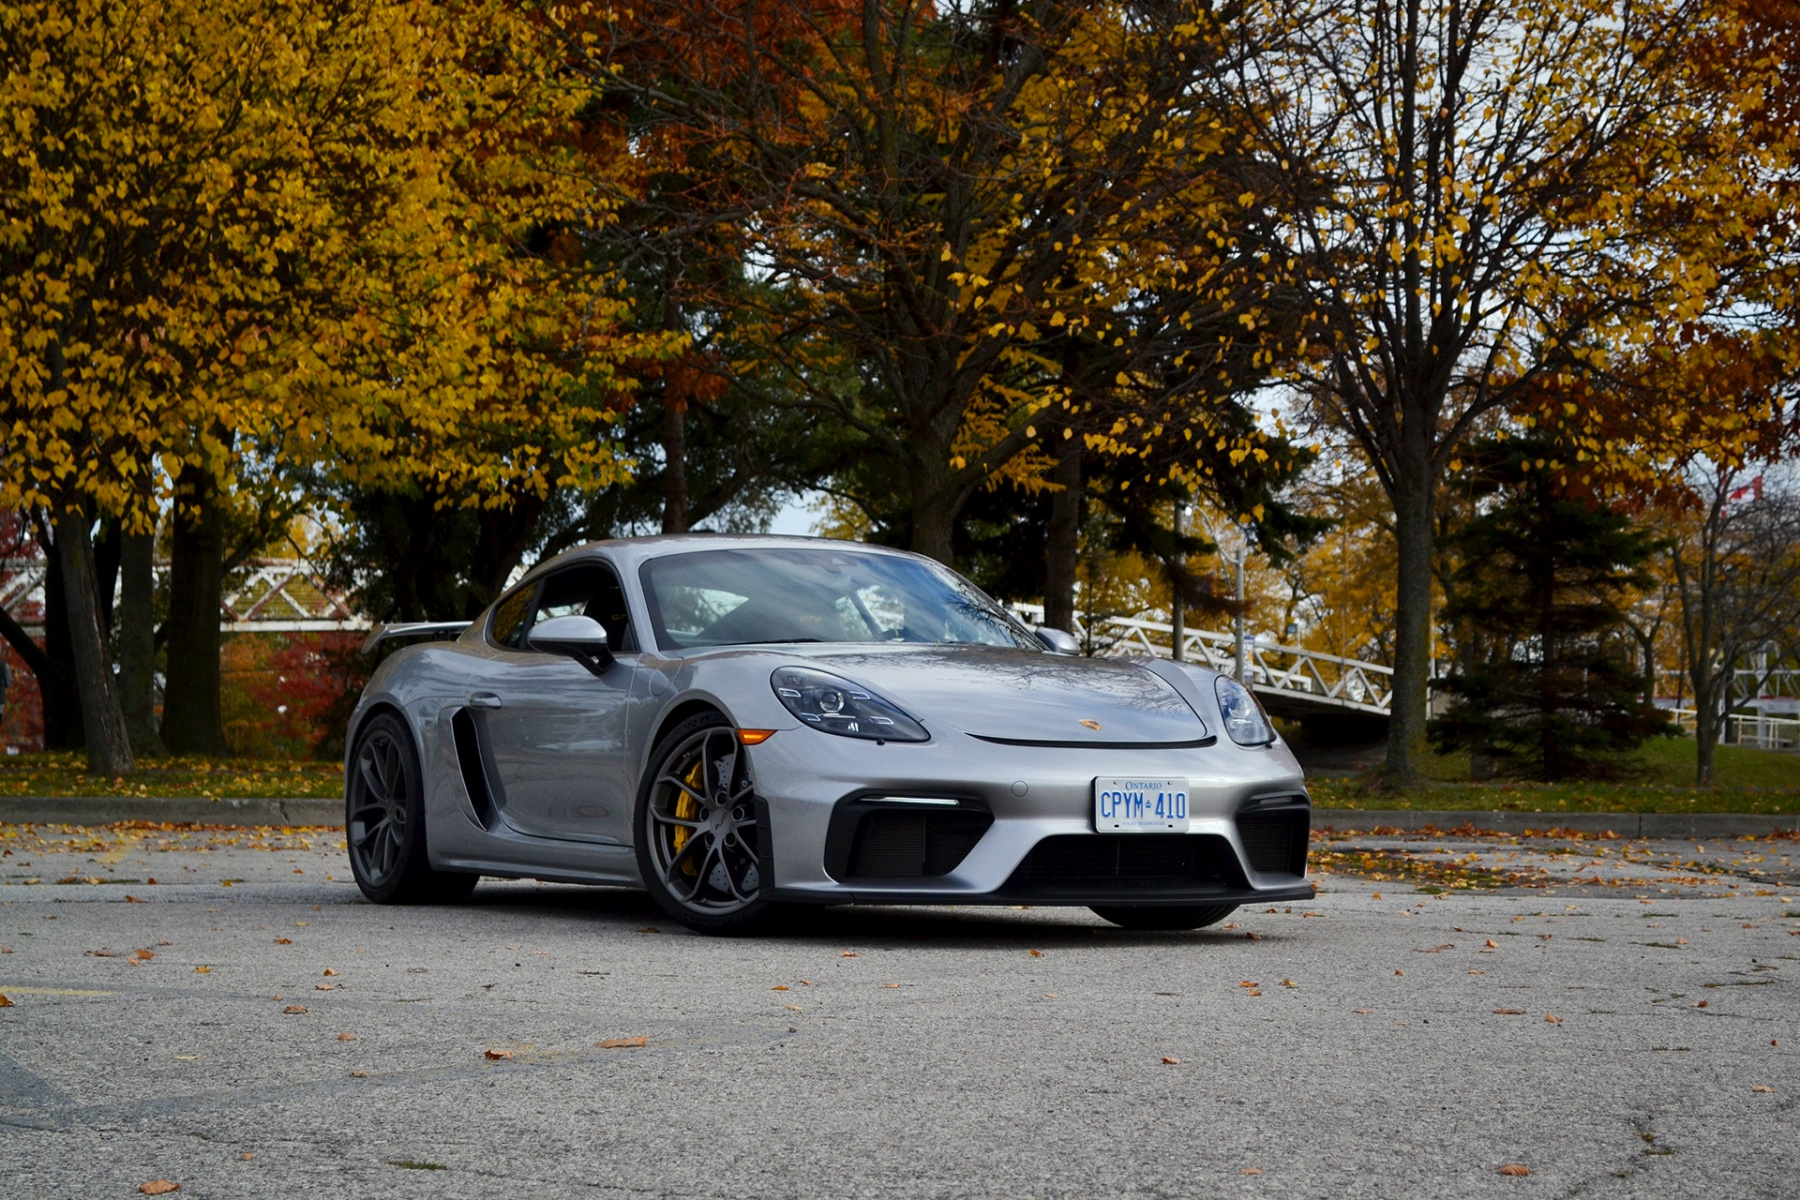 2020 Porsche 718 Cayman Gt4 Review Upon Reflection Some Other Things Might Matter Autoguide Com